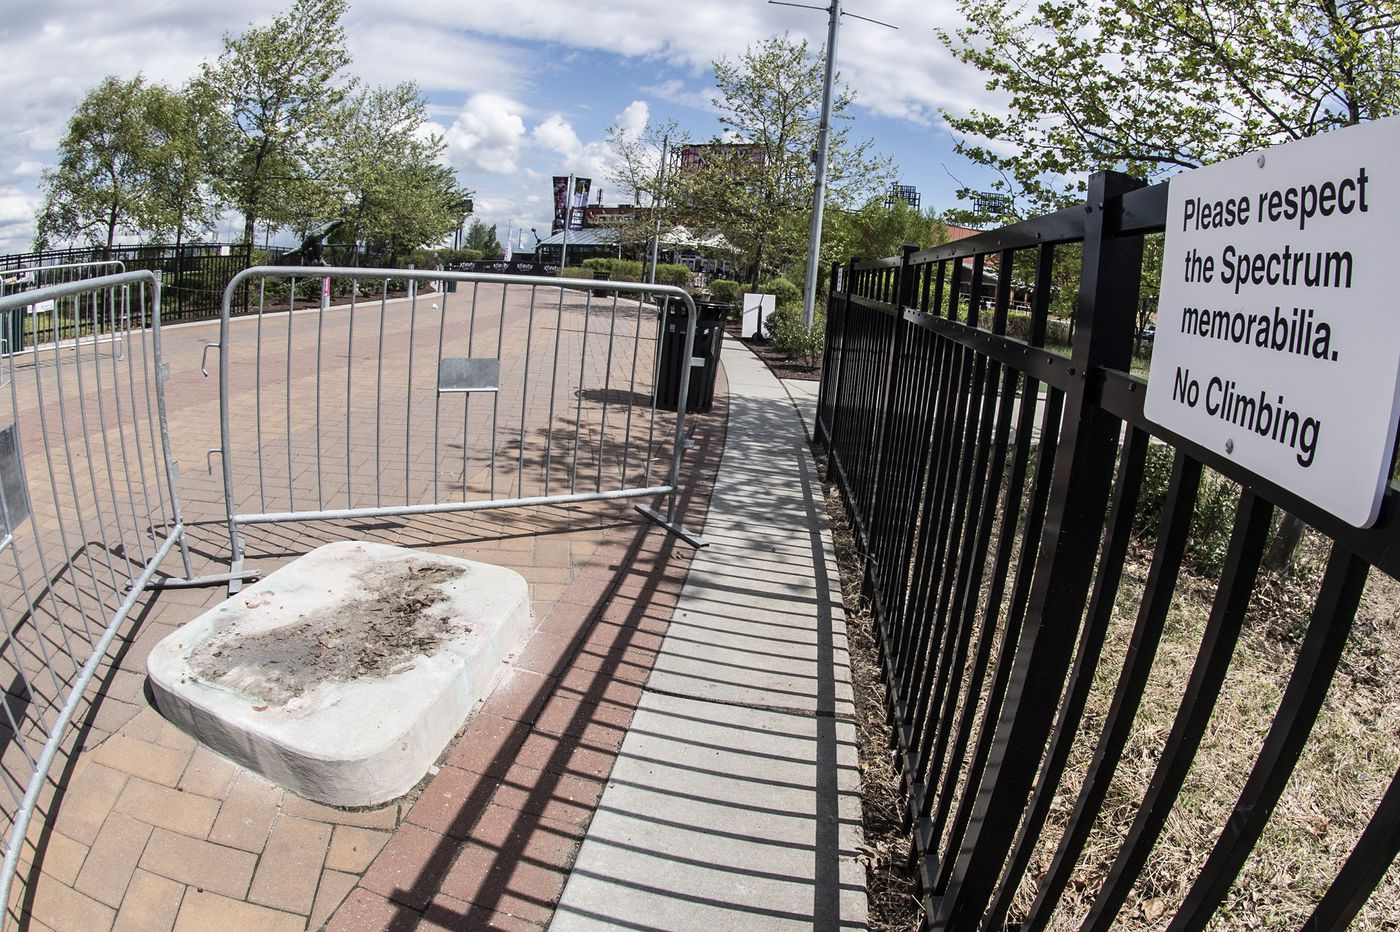 Where is the Kate Smith statue? Flyers' plans still undetermined.